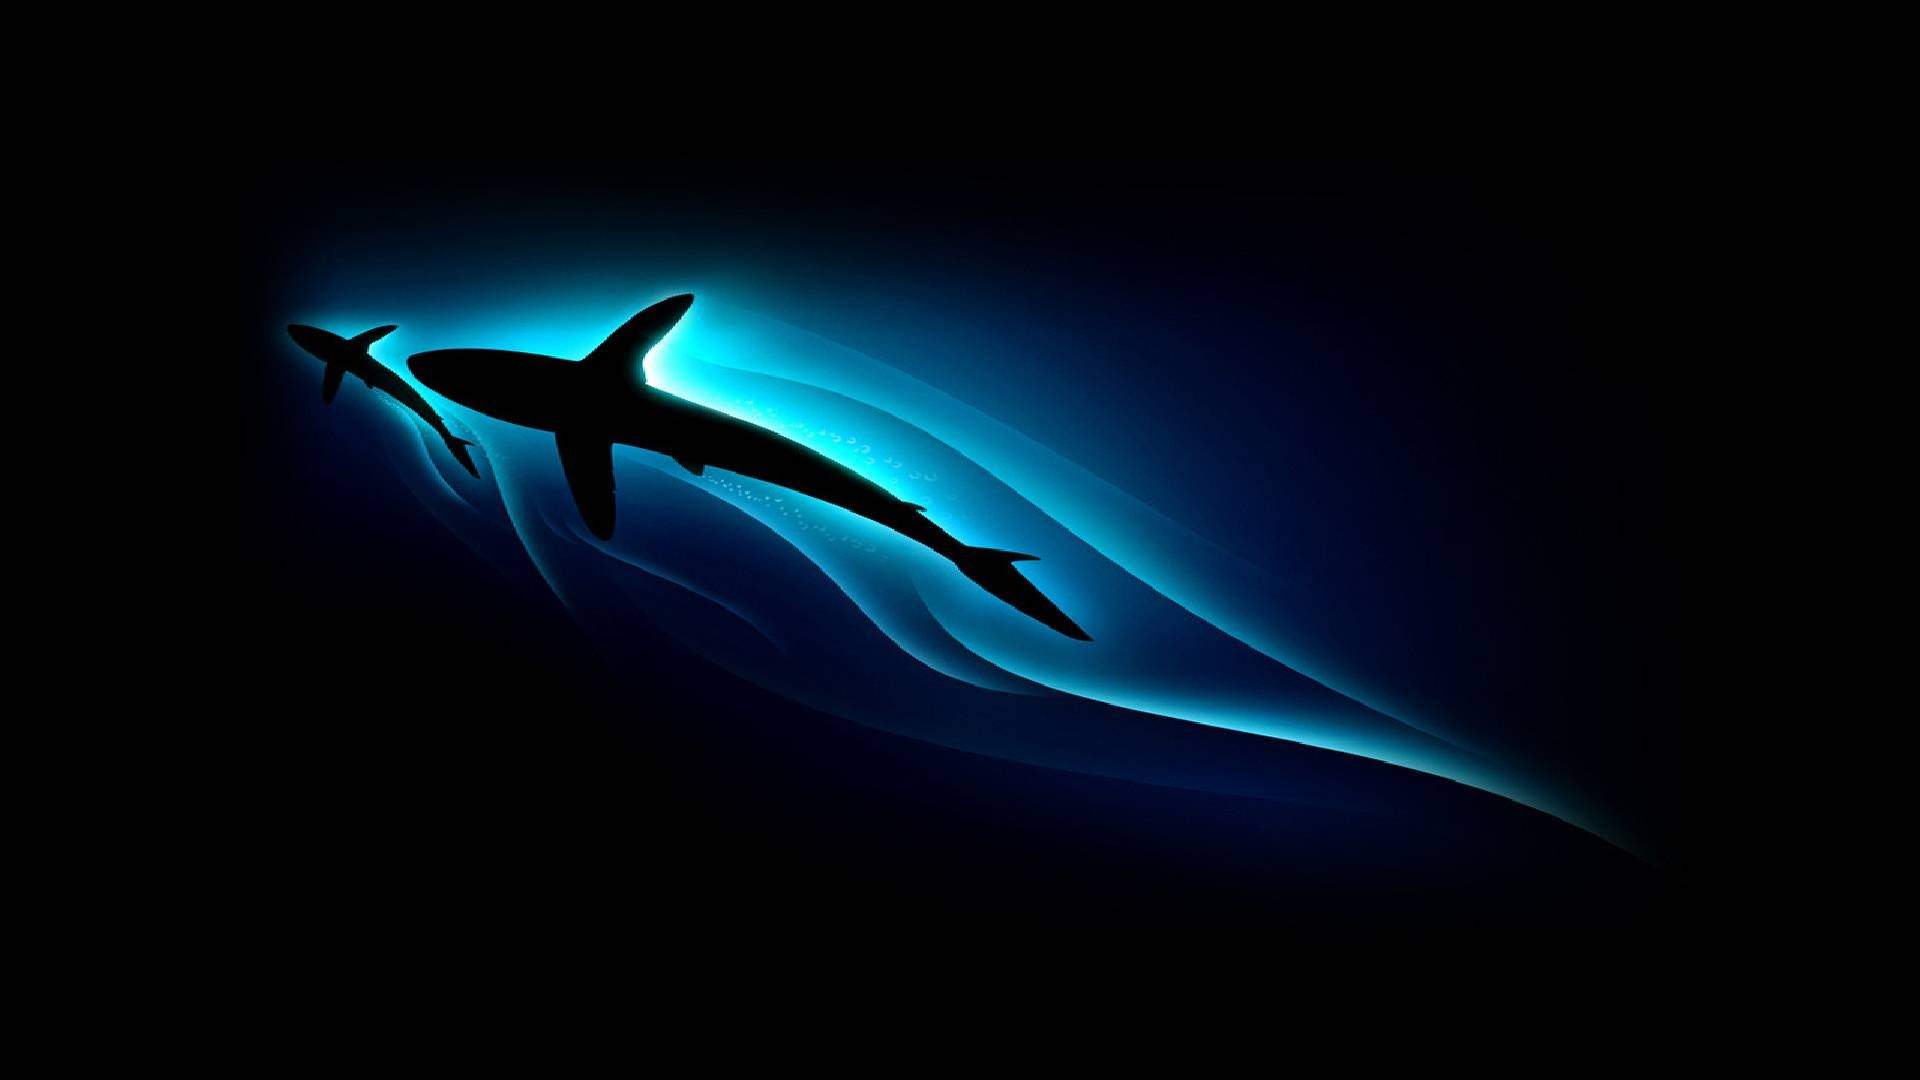 Cool Wallpapers Hd  WallpaperSafari